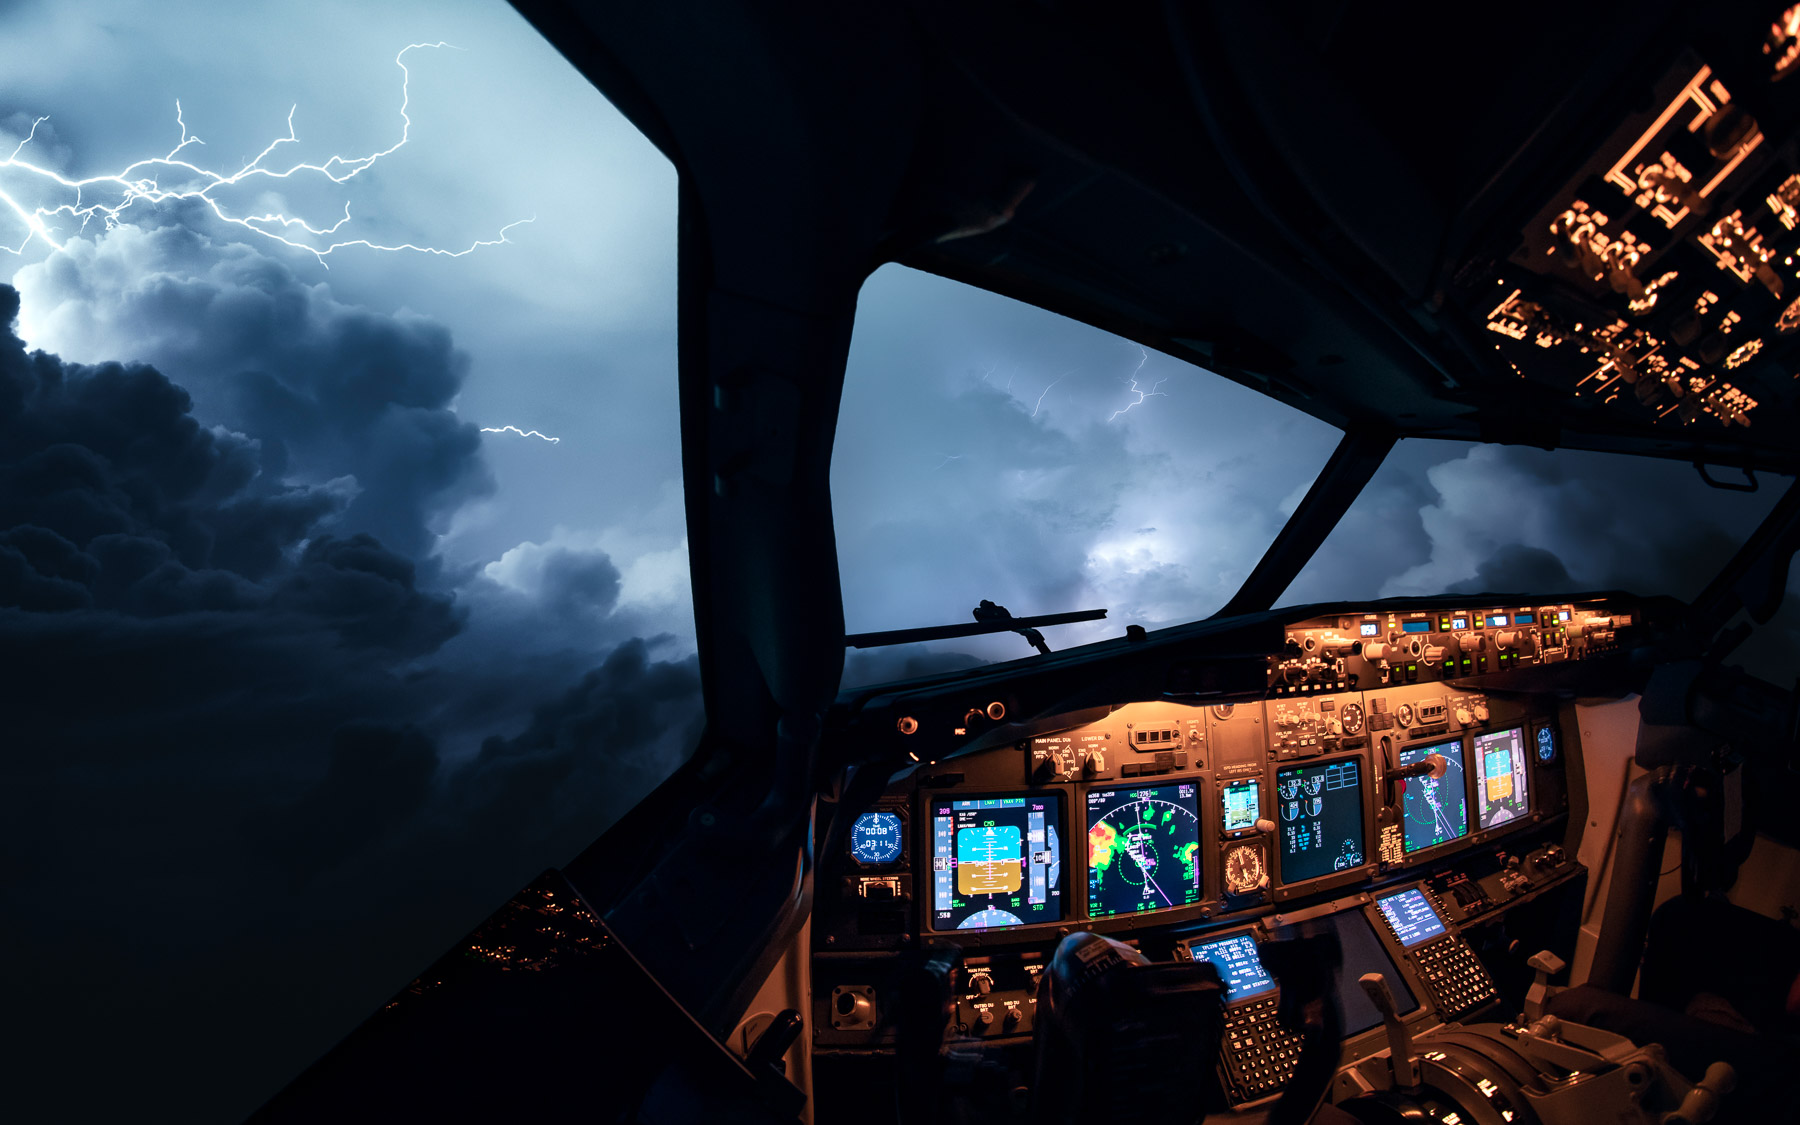 Thunderstorms in Aviation